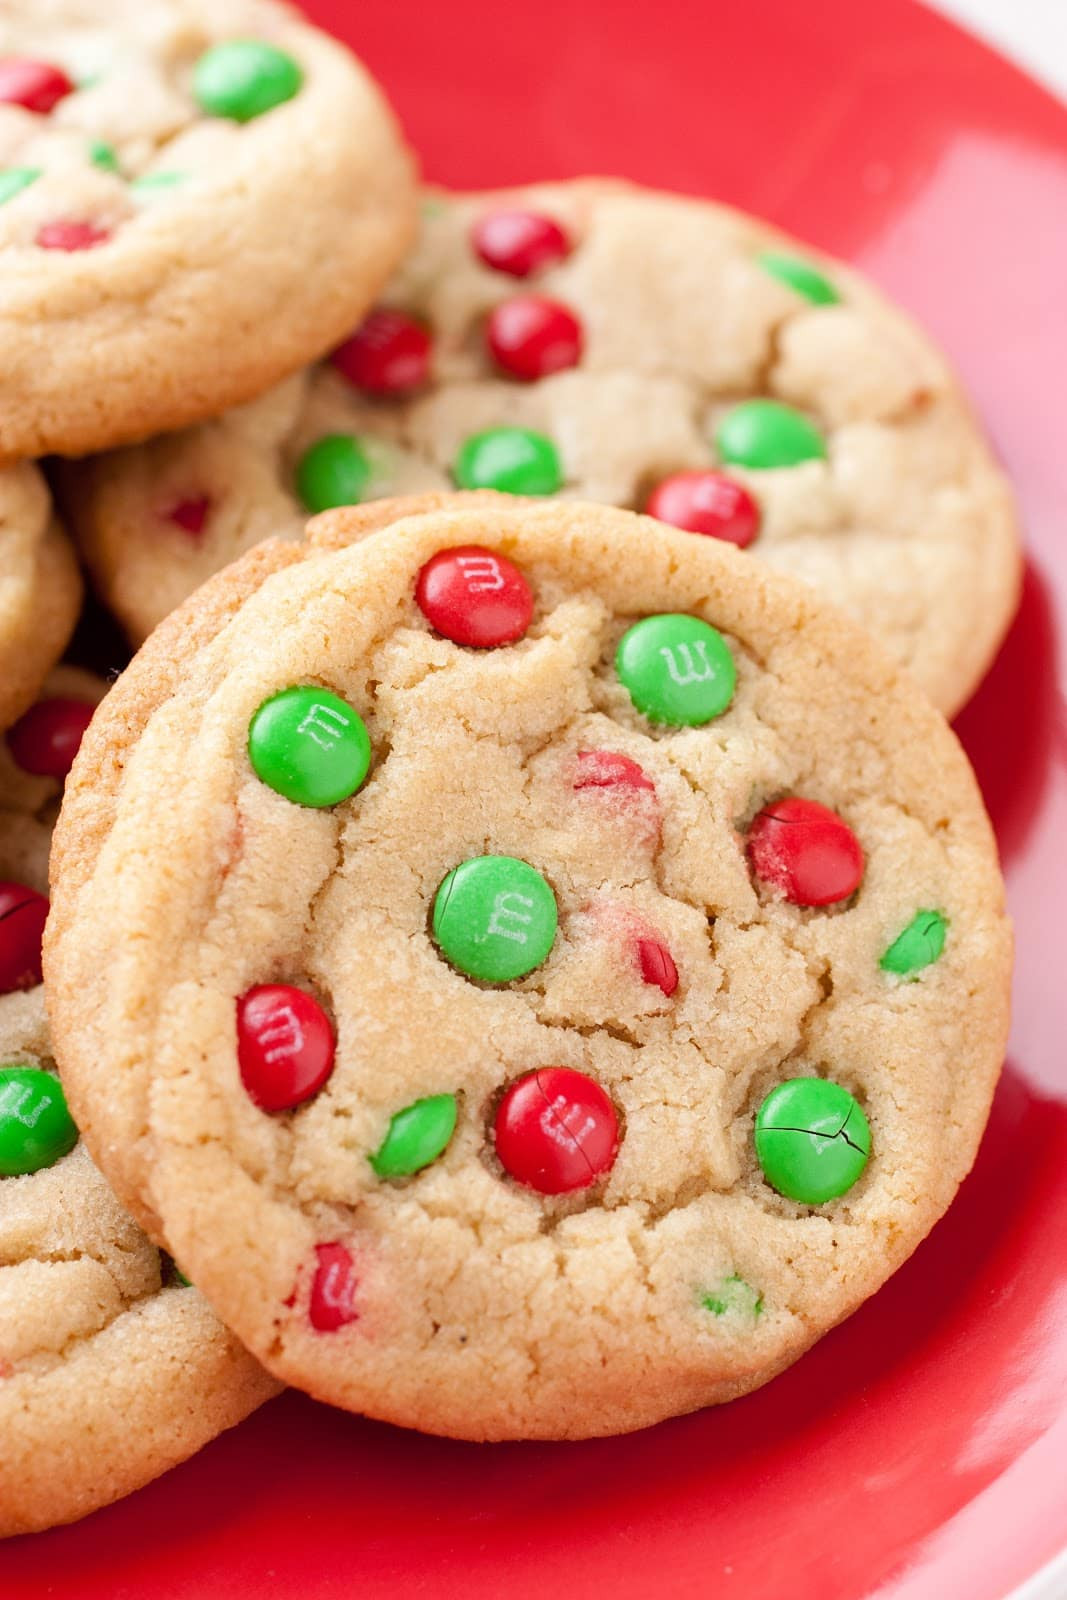 Christmas Choc Chip Cookies  M&M Cookies Christmas Style Cooking Classy